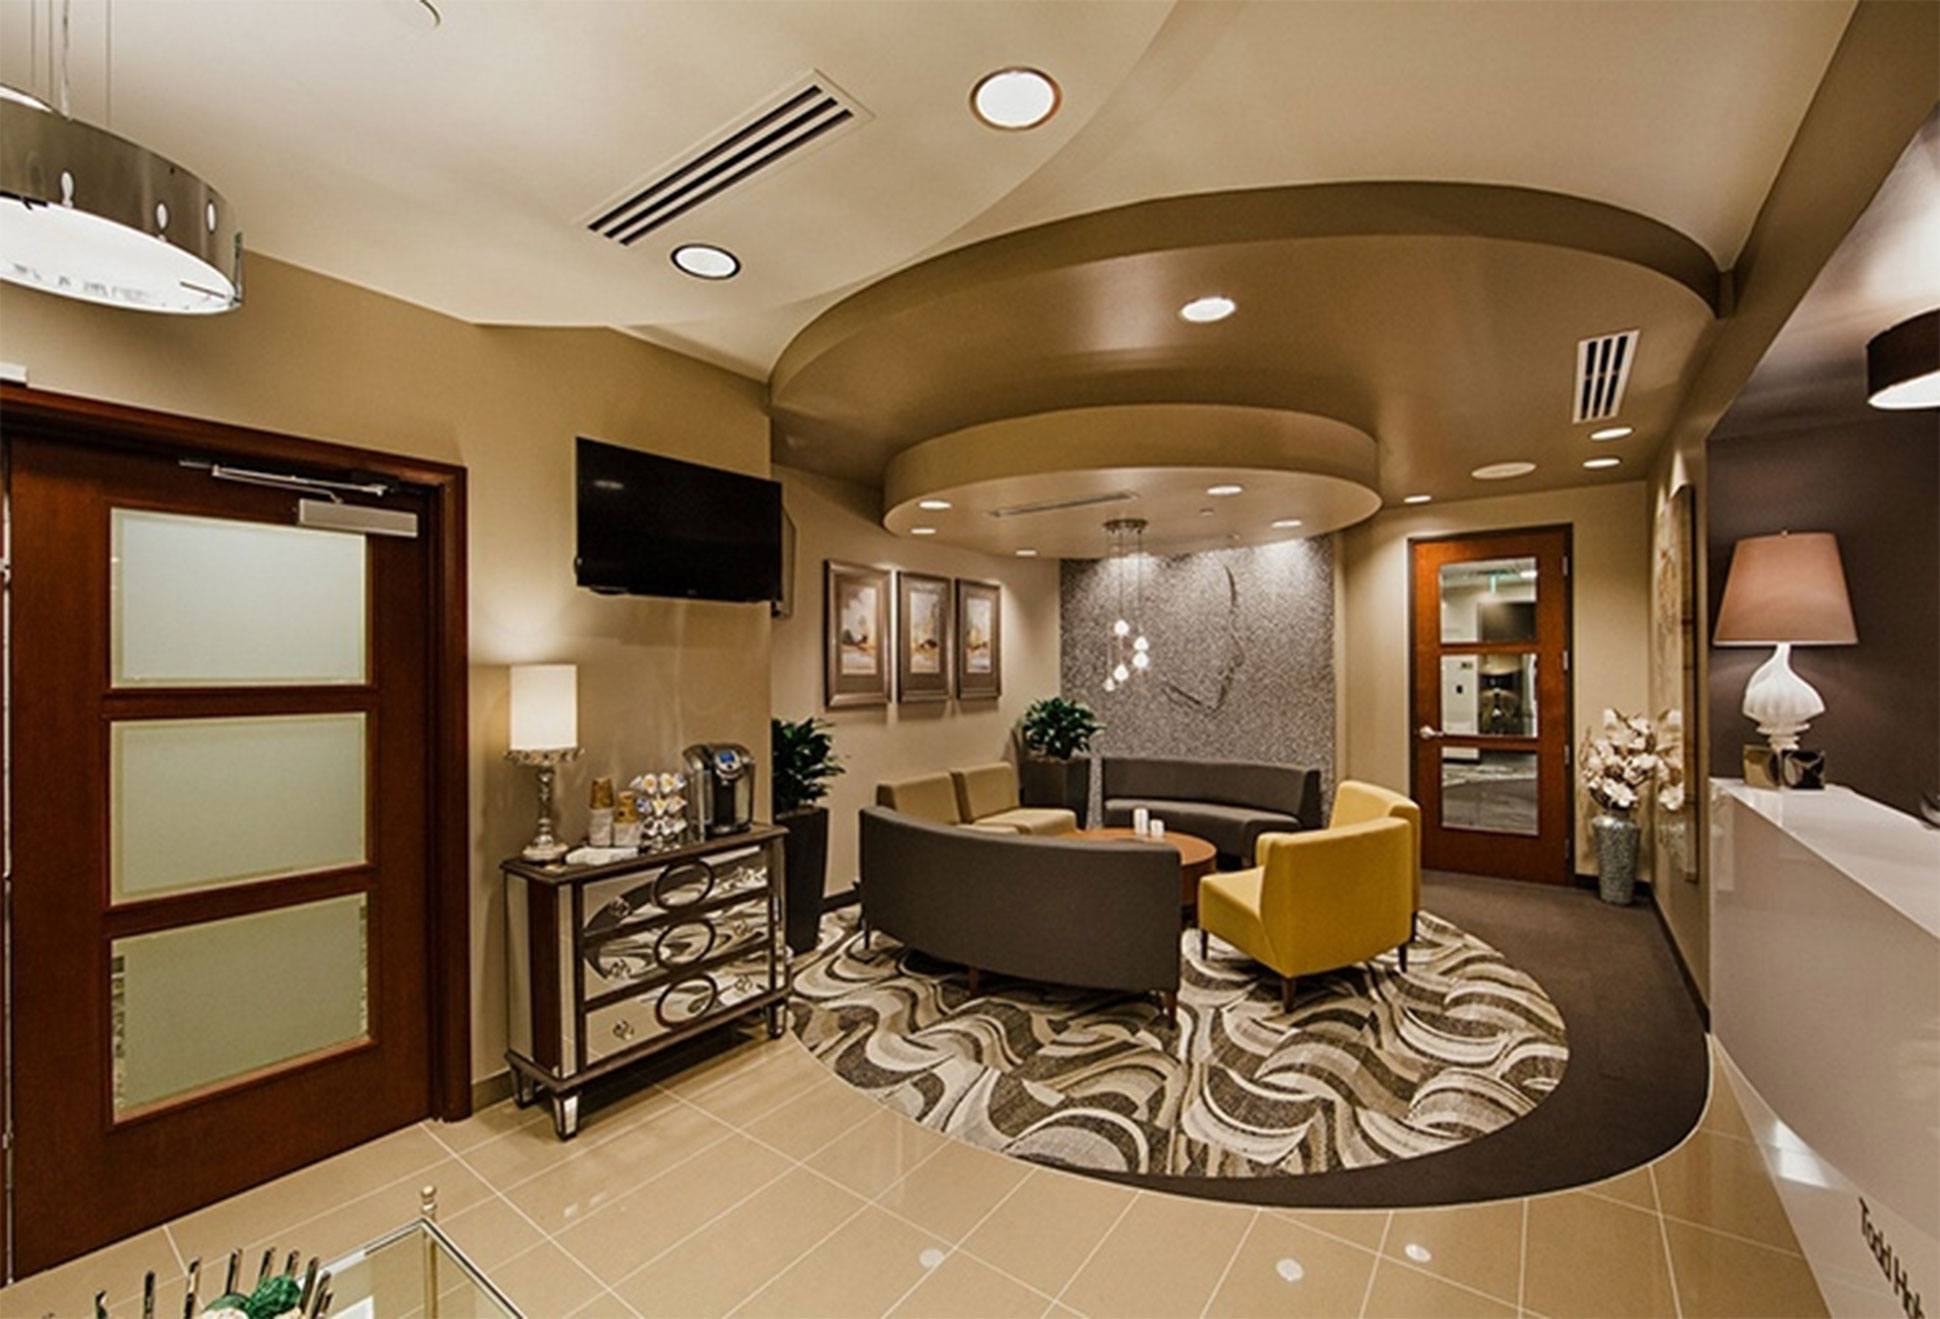 Hobgood Facial Plastic Surgery Waiting Room in Scottsdale